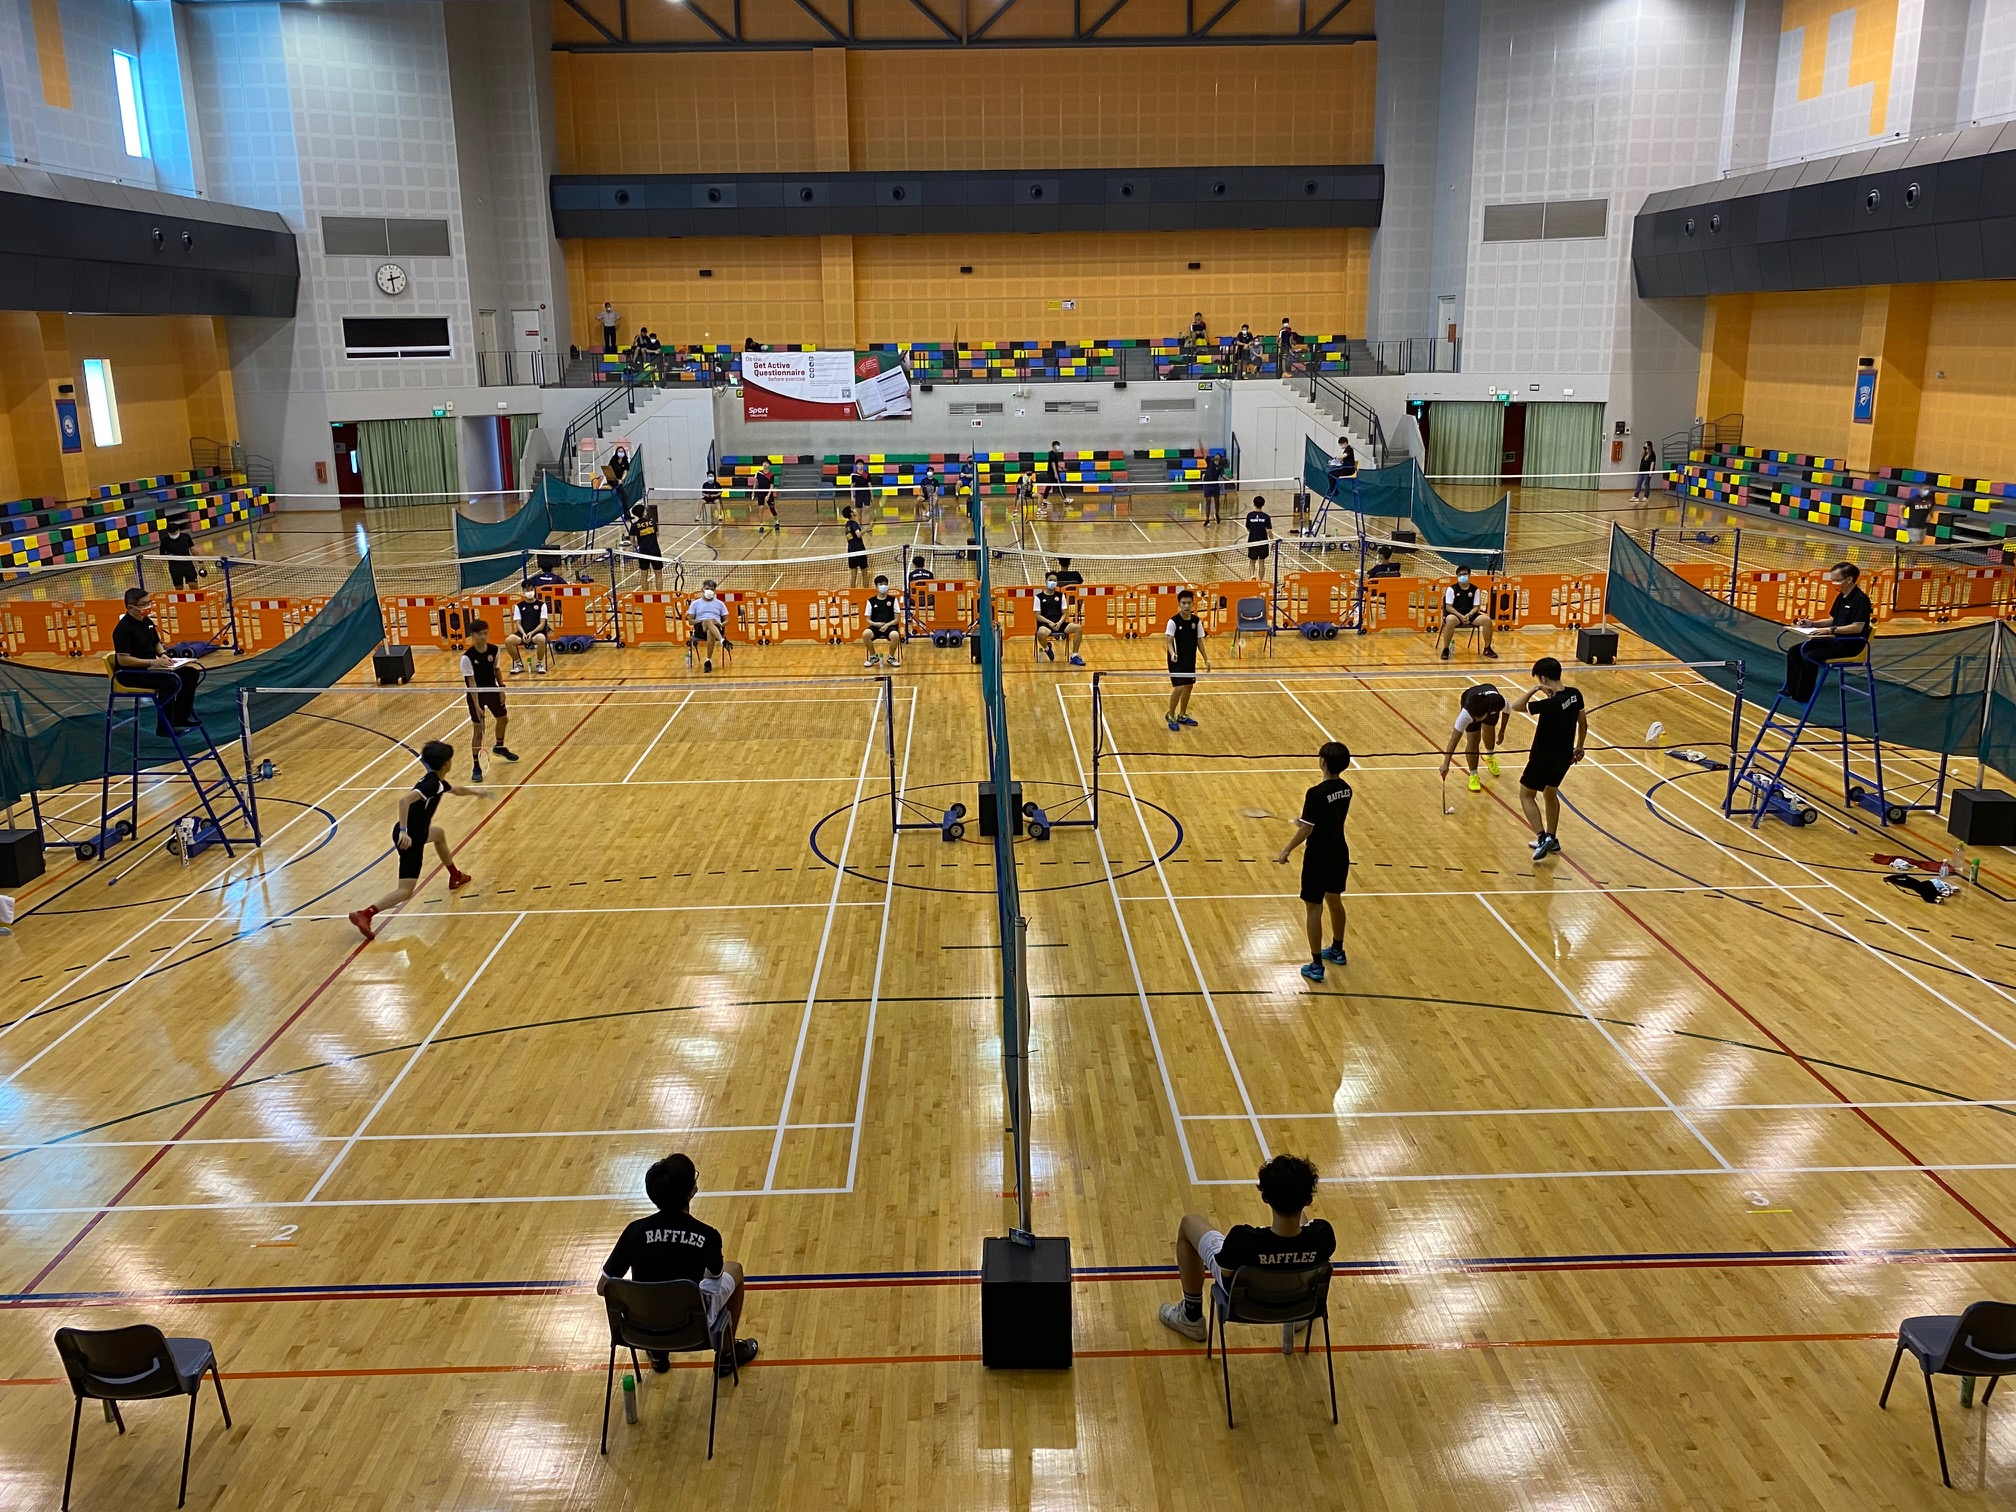 NSG Badminton: RI's shuttlers take top spot in Group C, after their recent 4-1 triumph over VJC!